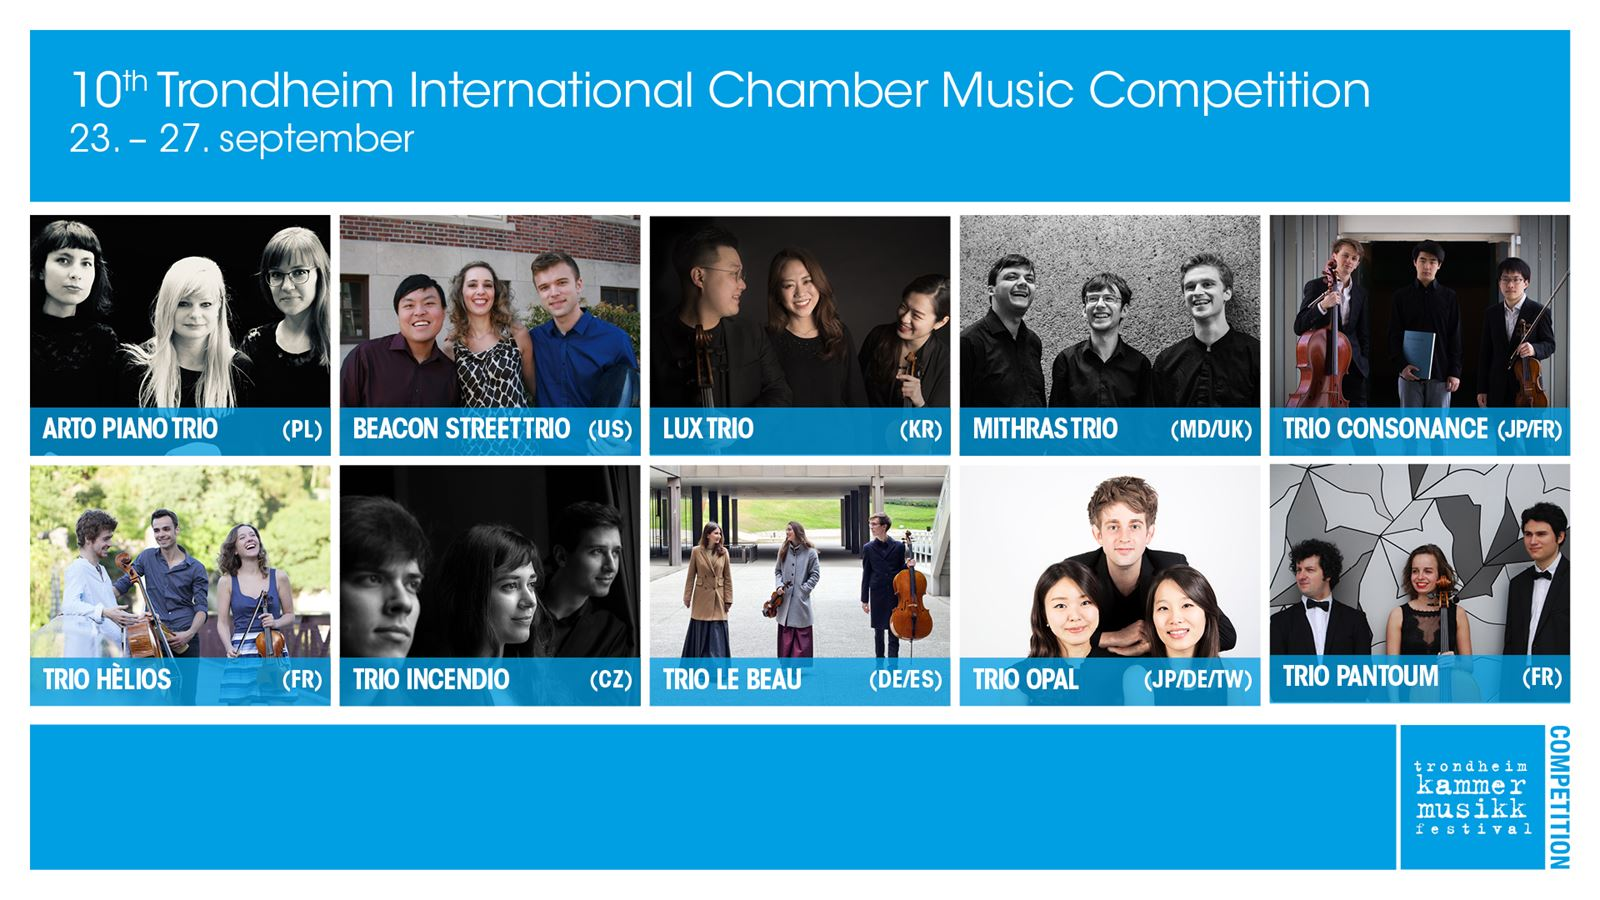 TRONDHEIM INTL CHAMBER MUSIC COMPETITION